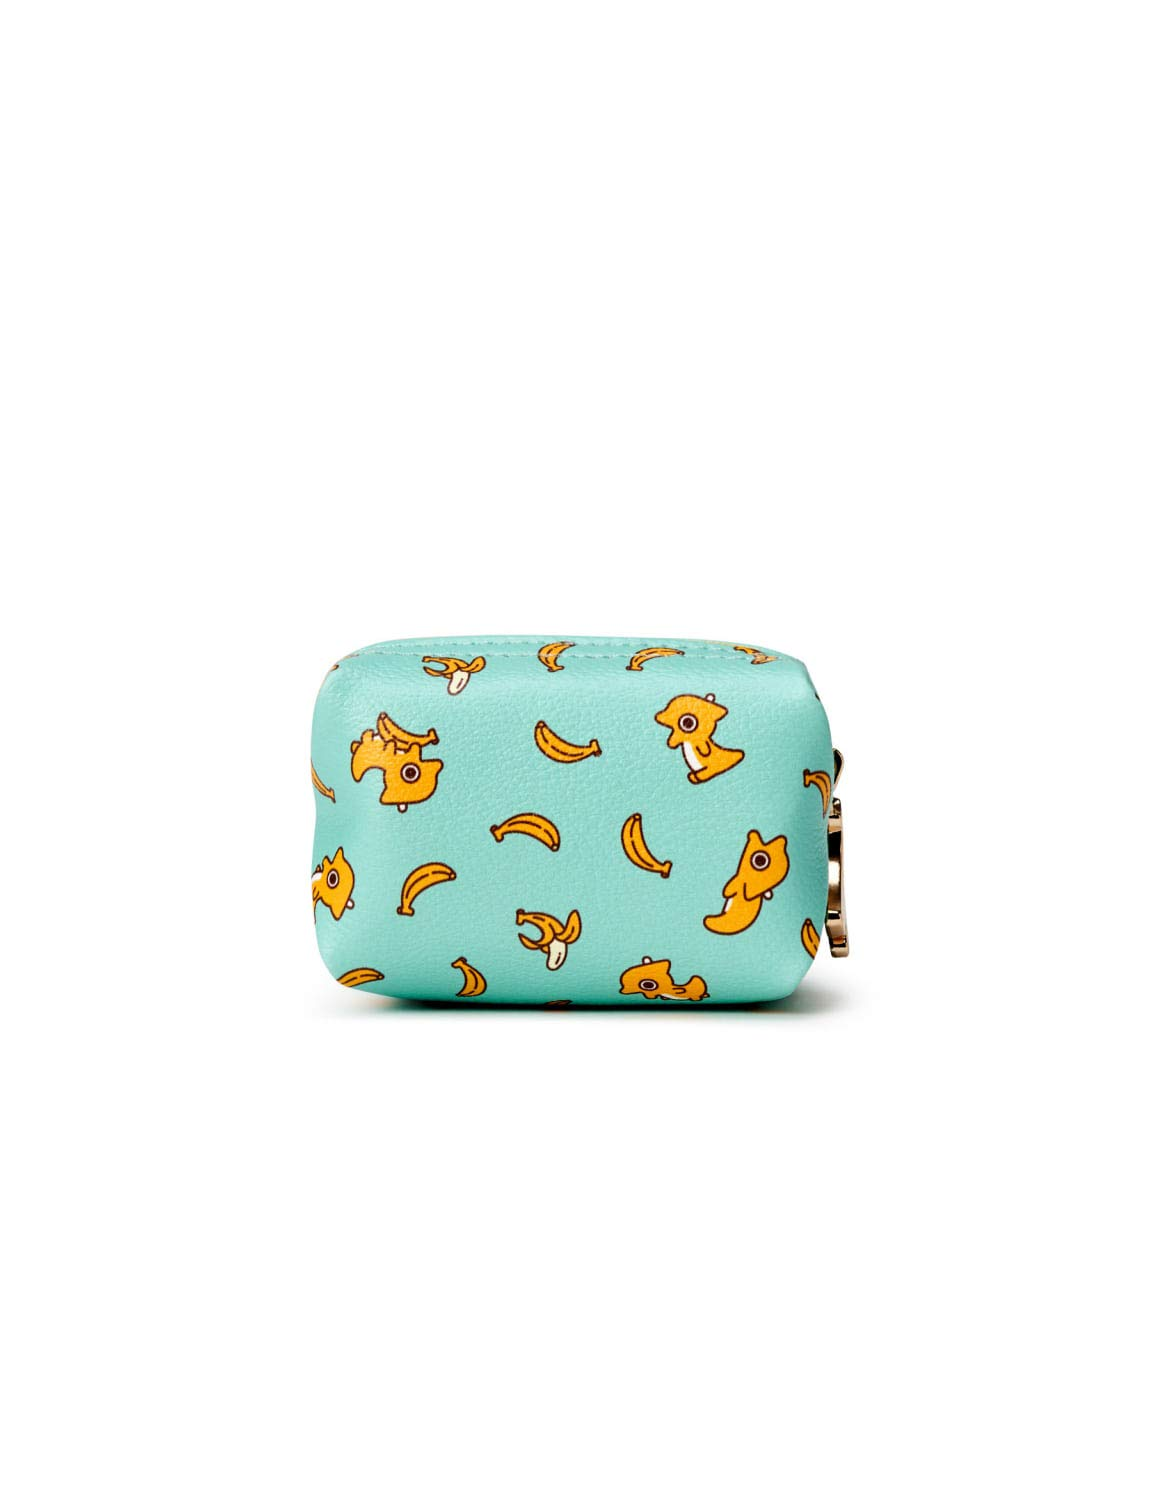 Amazon.com: Spoonz - Mini bolsa de cosméticos de color menta ...